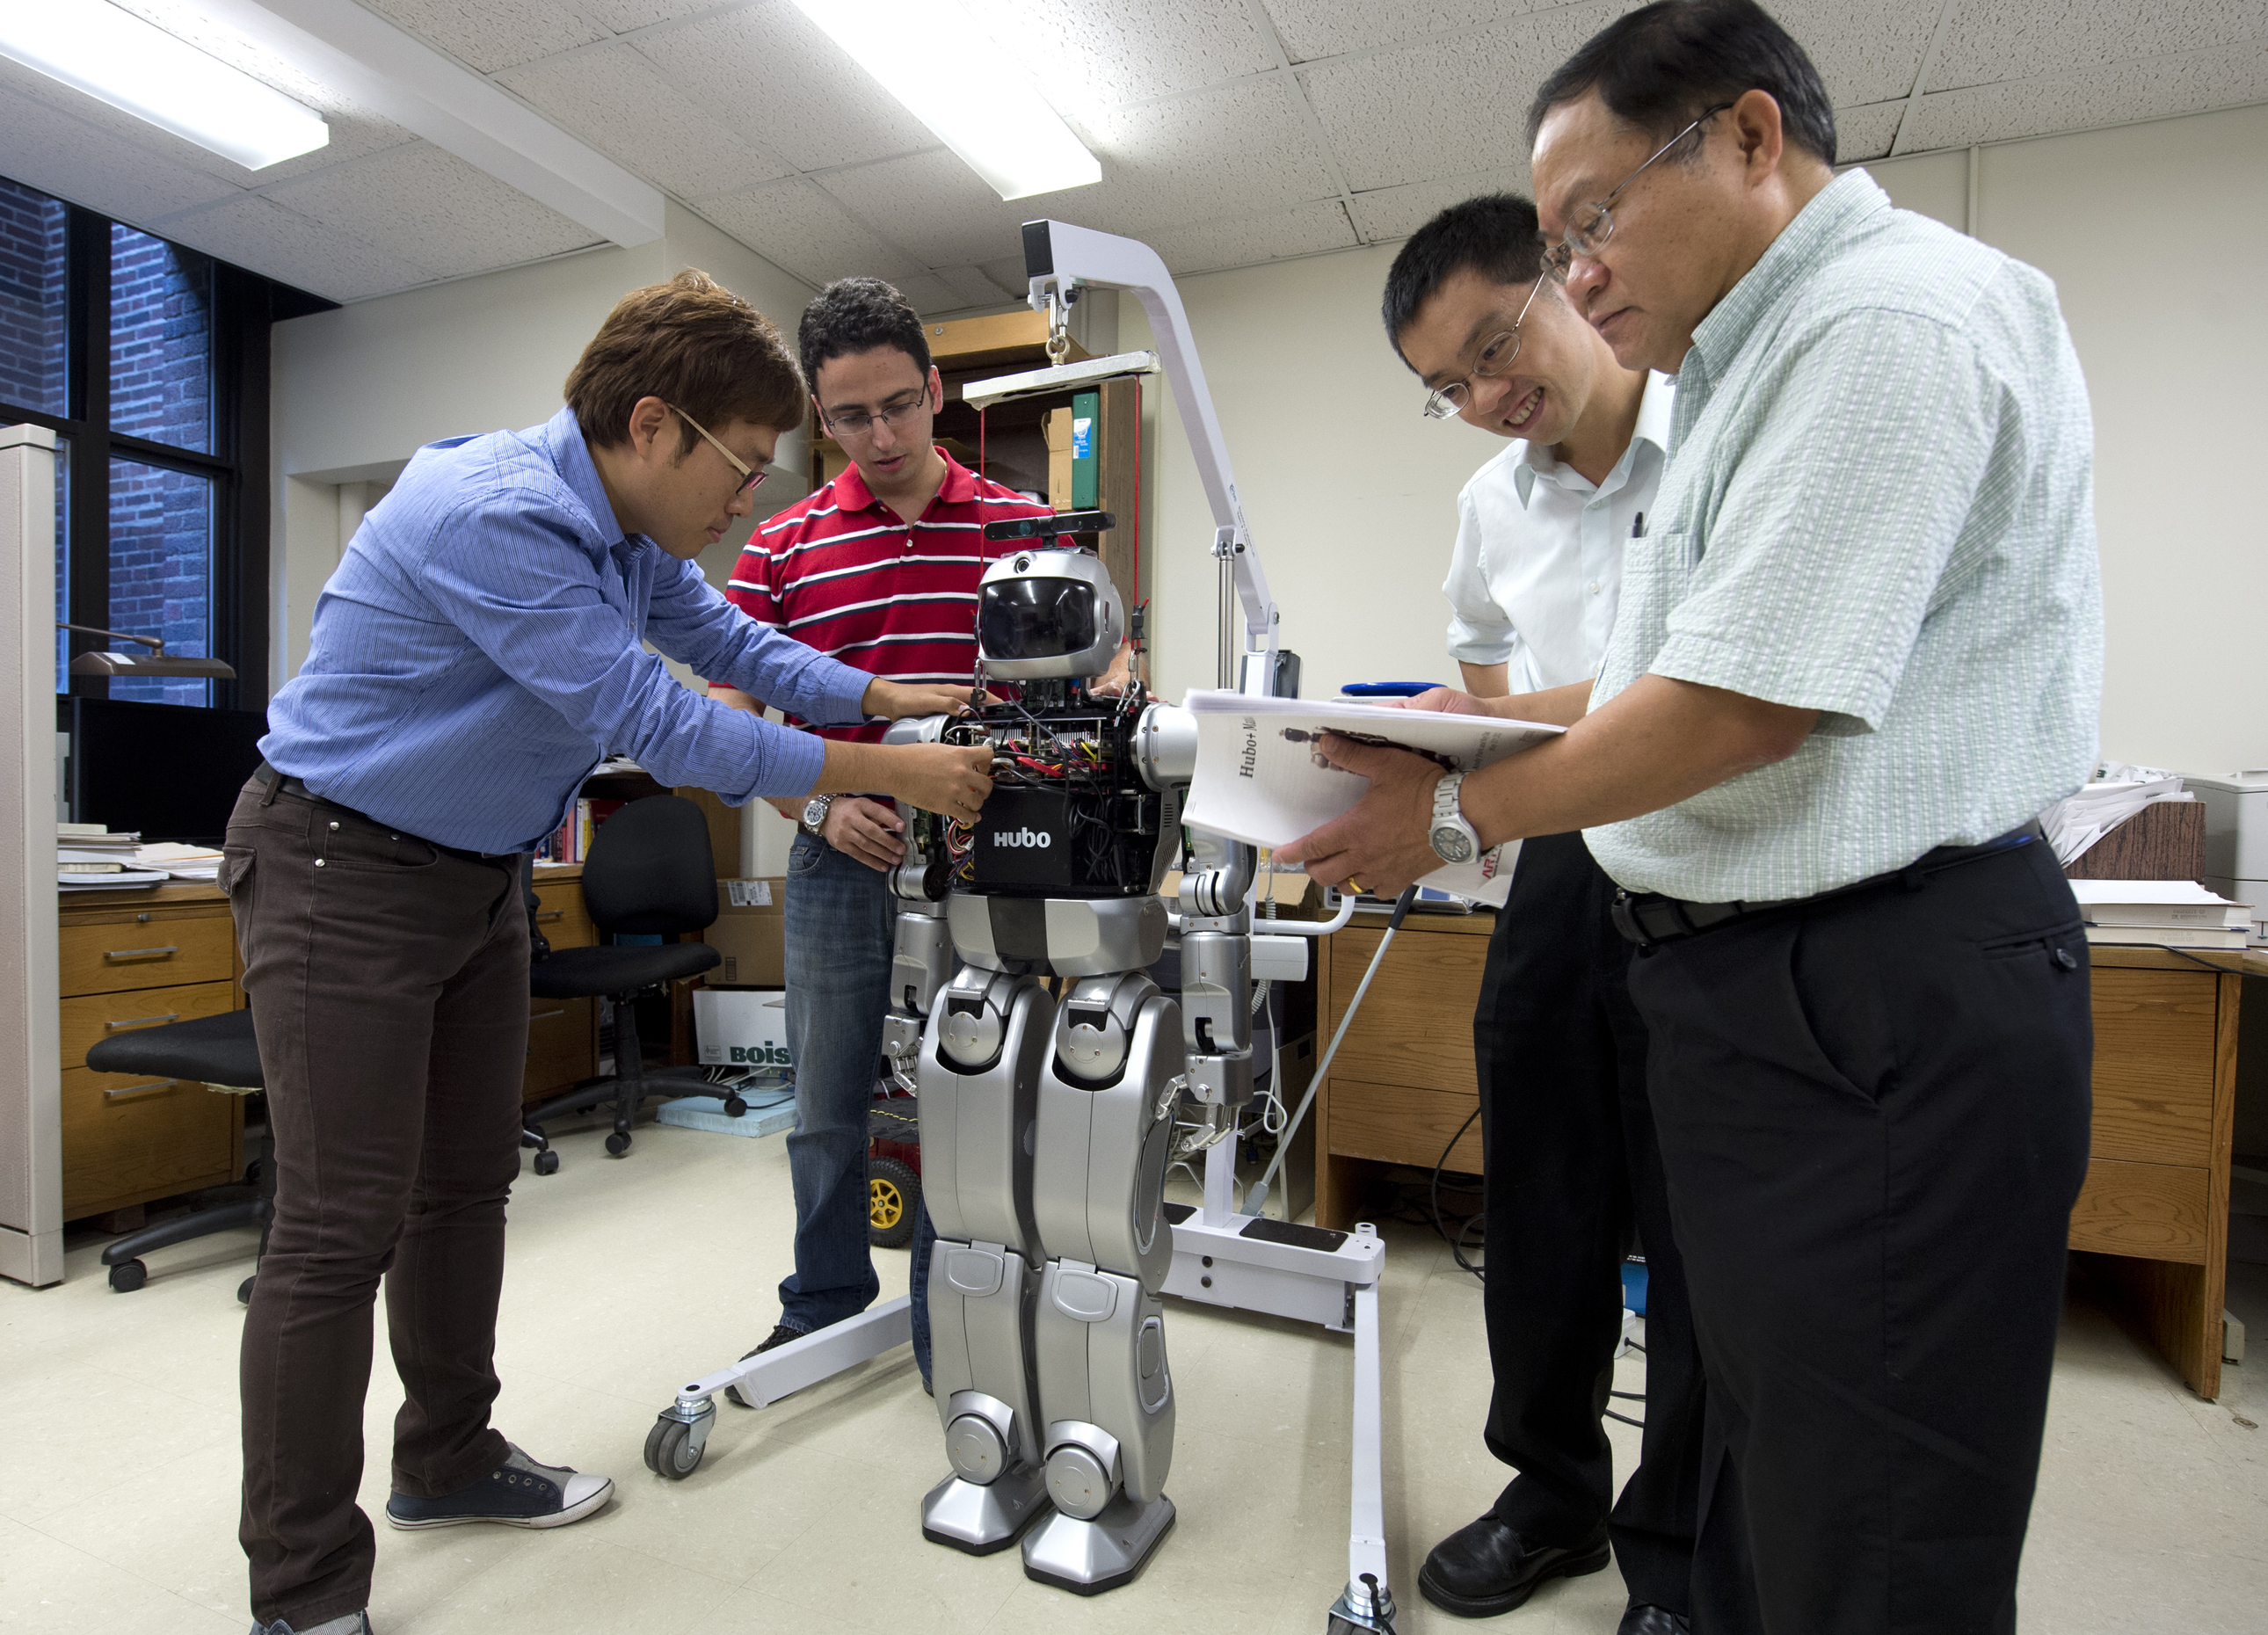 Humanoid Robots Are Focus Of Research At Purdue